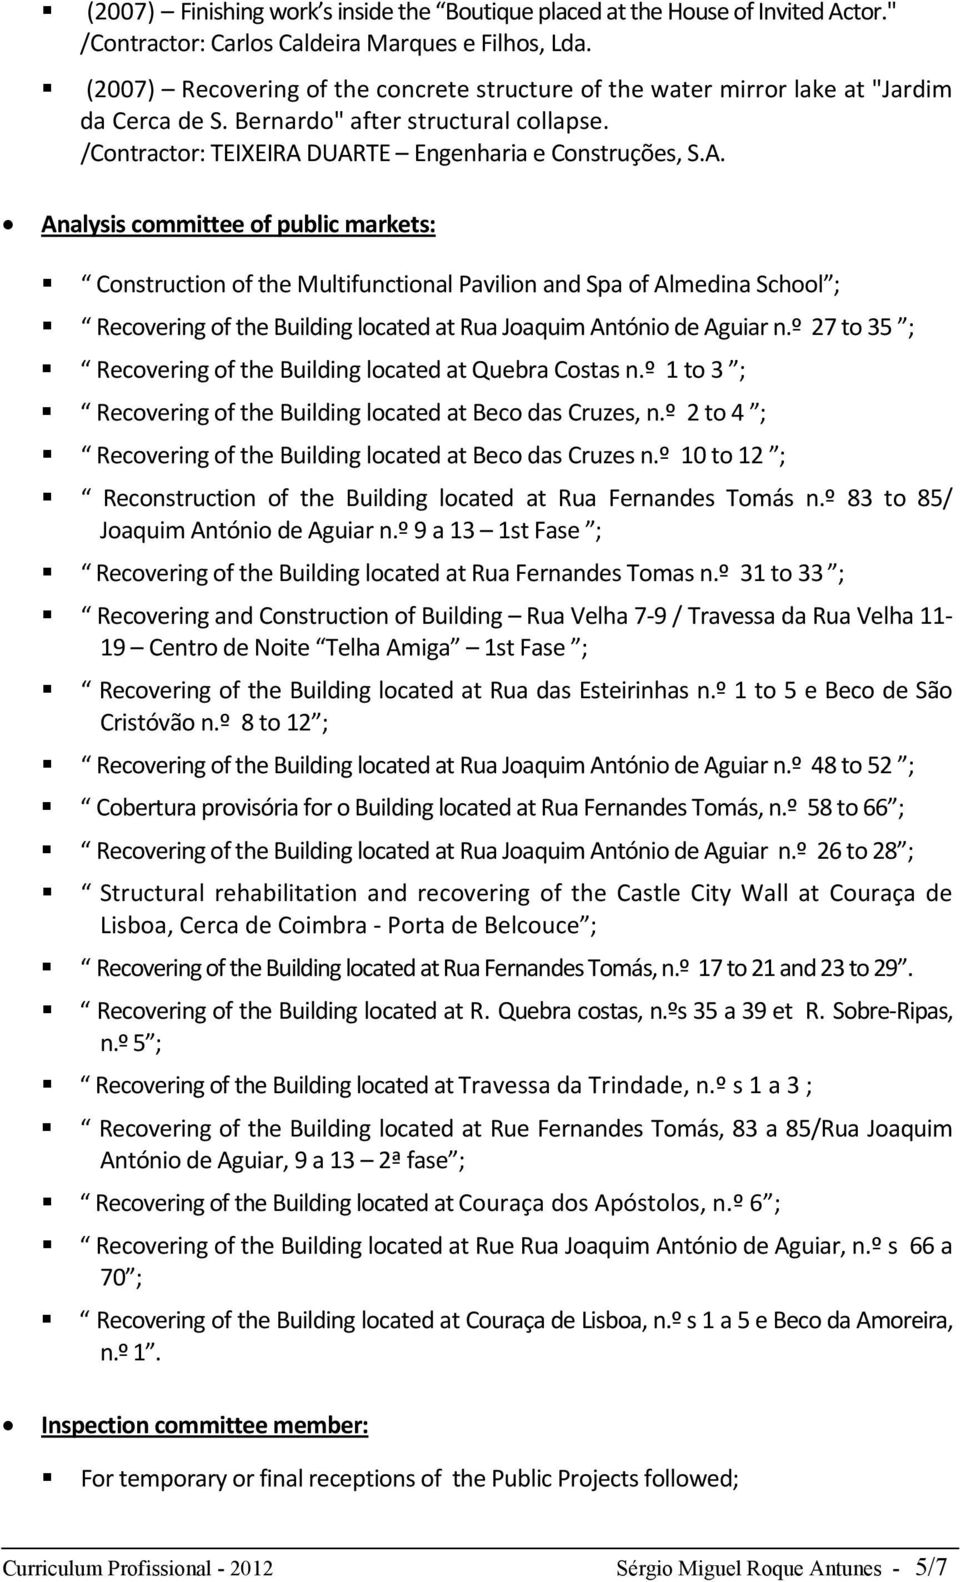 DUARTE Engenharia e Construções, S.A. Analysis committee of public markets: Construction of the Multifunctional Pavilion and Spa of Almedina School ; Recovering of the Building located at Rua Joaquim António de Aguiar n.